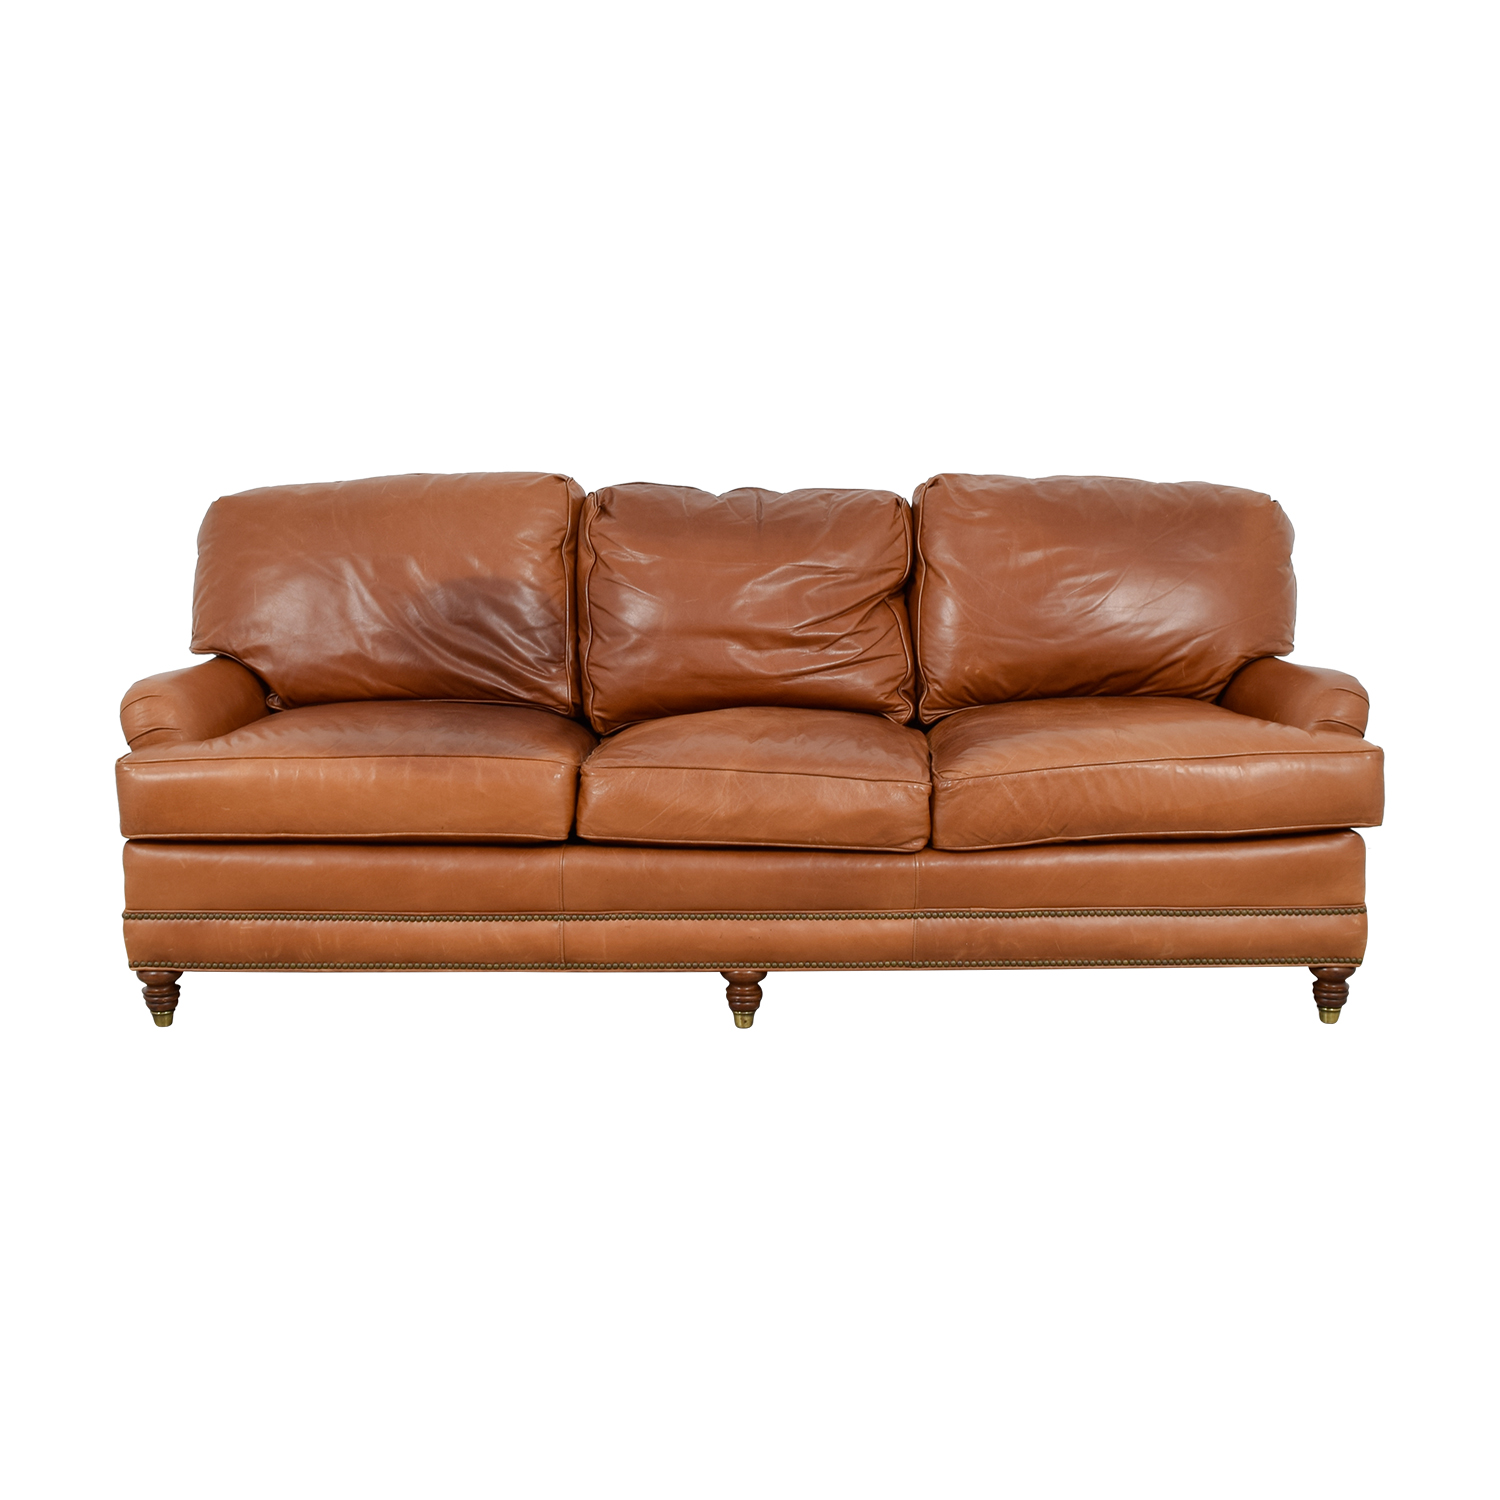 90% OFF - Whittemore-Sherrill Whittemore-Sherrill Brown Leather Sofa ...